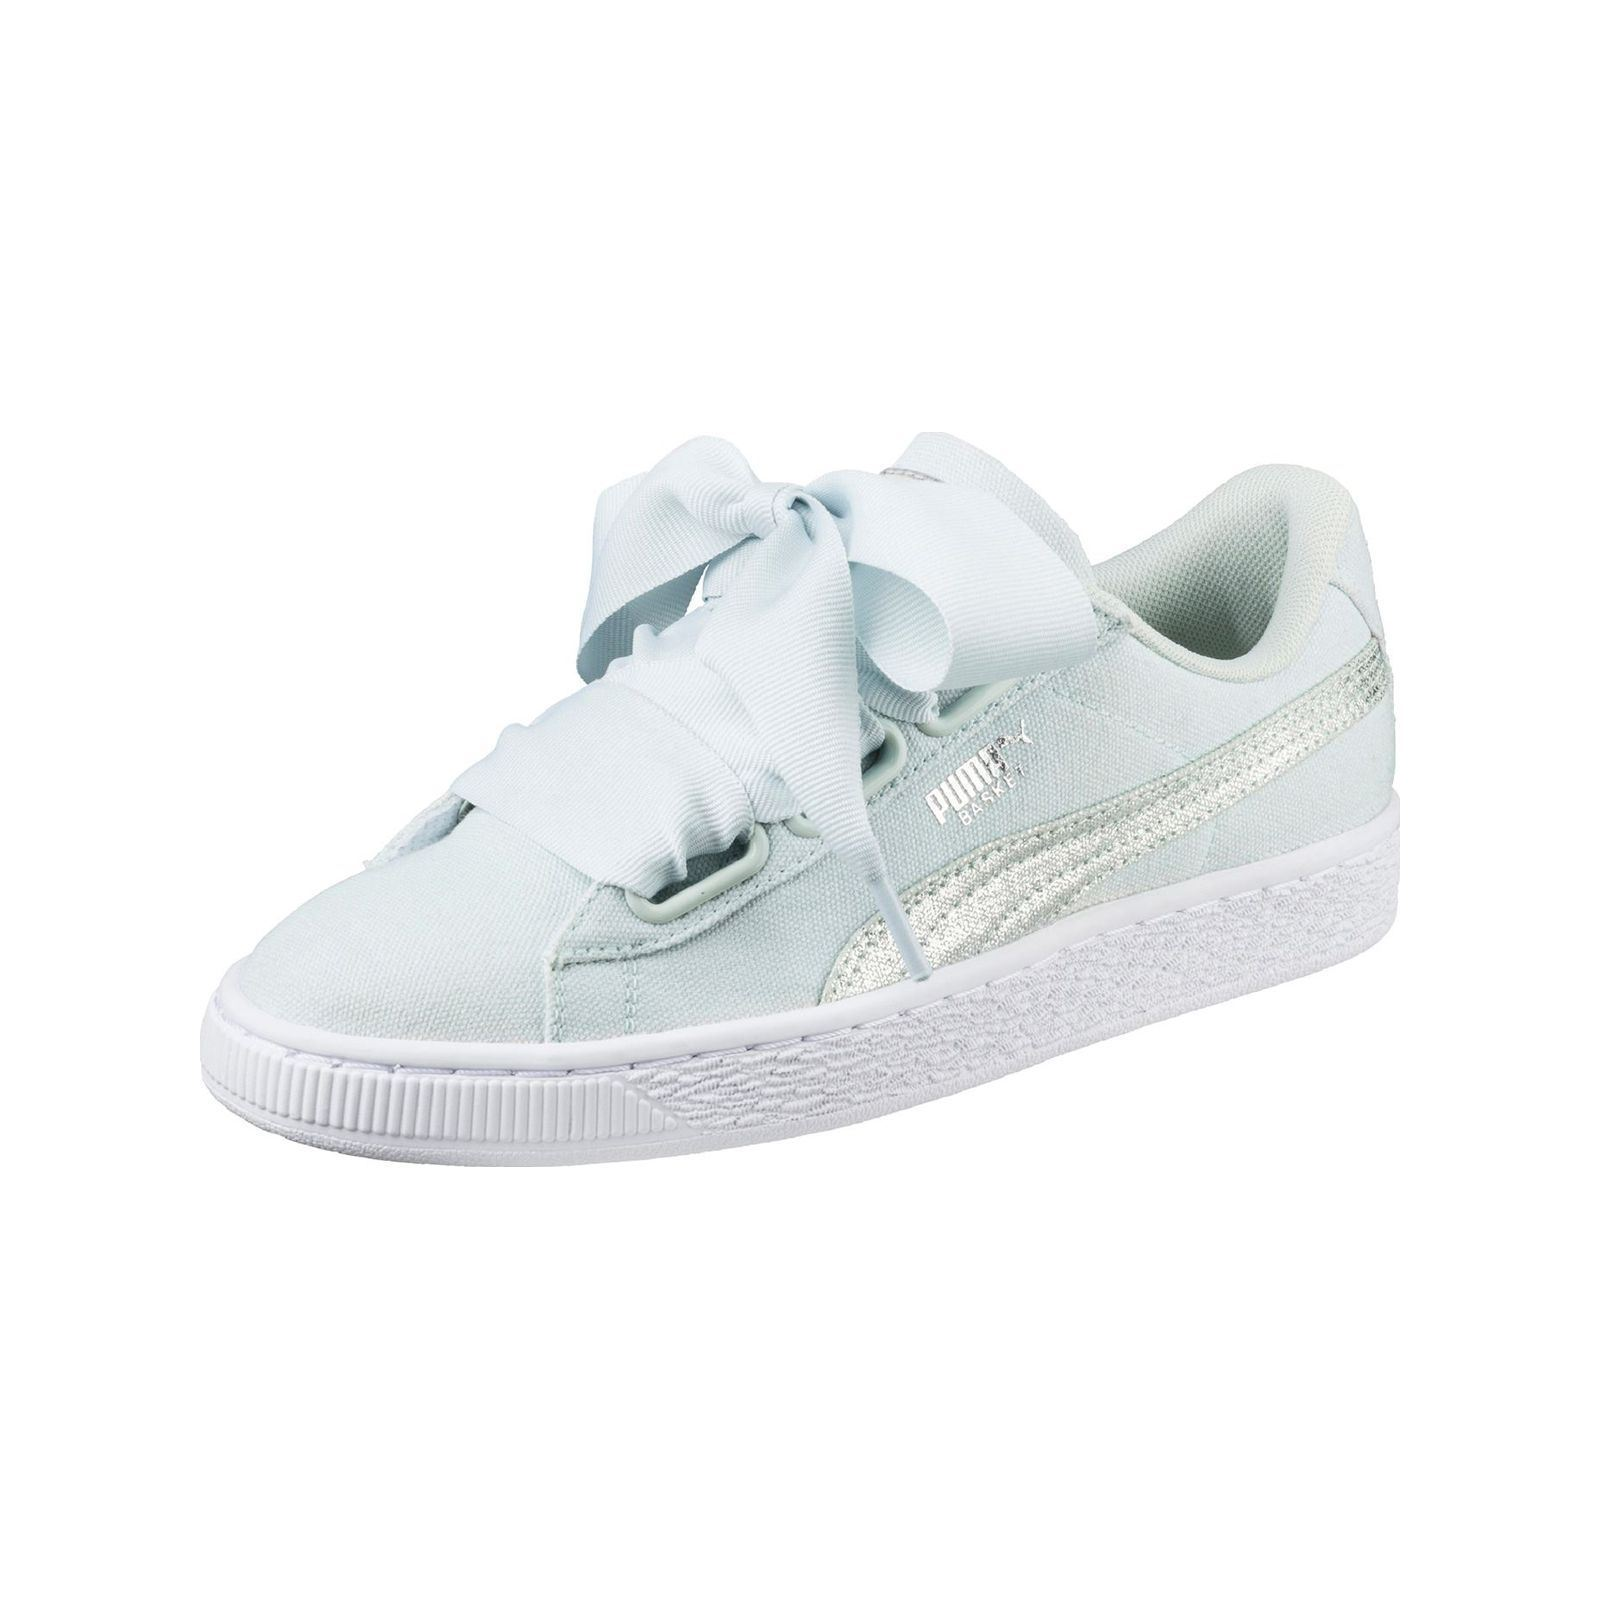 1e999c46f41e Puma Heart Canvas - Baskets Mode - bleu ciel   BrandAlley